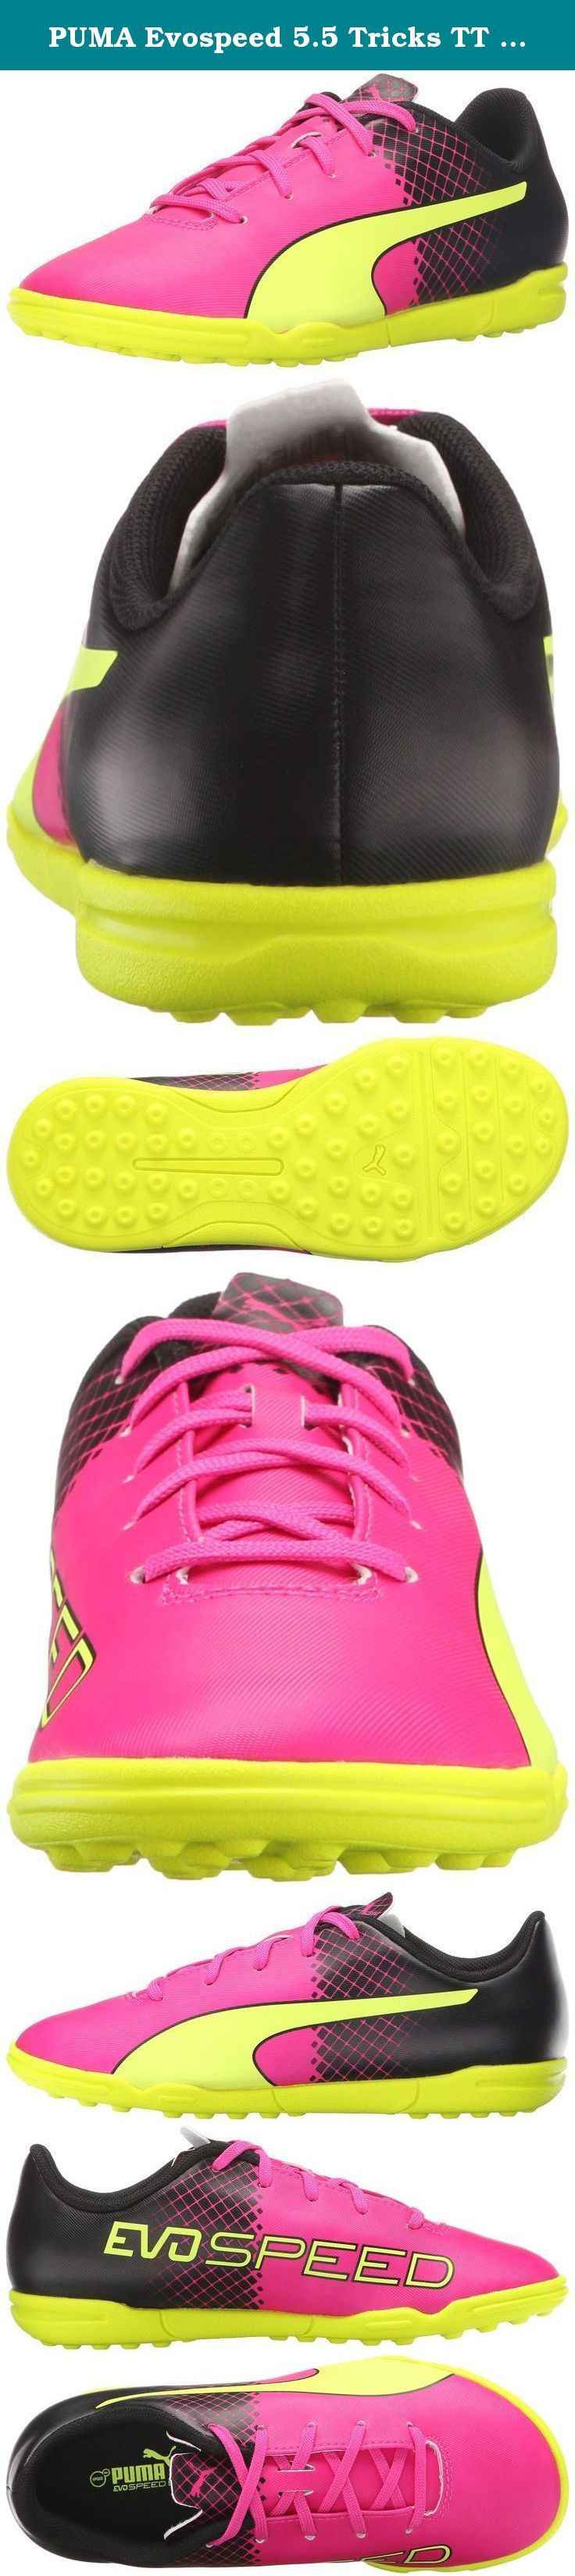 PUMA Evospeed 5.5 Tricks TT JR Limited Edition Soccer Cleat (Little Kid/Big Kid), Pink Glo/Safety Yellow, 4.5 B US Big Kid. The evospeed 5.5 tricks jr is an entry price level junior football boot that combines comfort and durability with a fresh design. The soft yet durable synthetic leather, the improved anatomic fit and the central lacing all add to the comfort of this low maintenance and durable boot. The tricks execution guarantees for maximized on-pitch visibility.